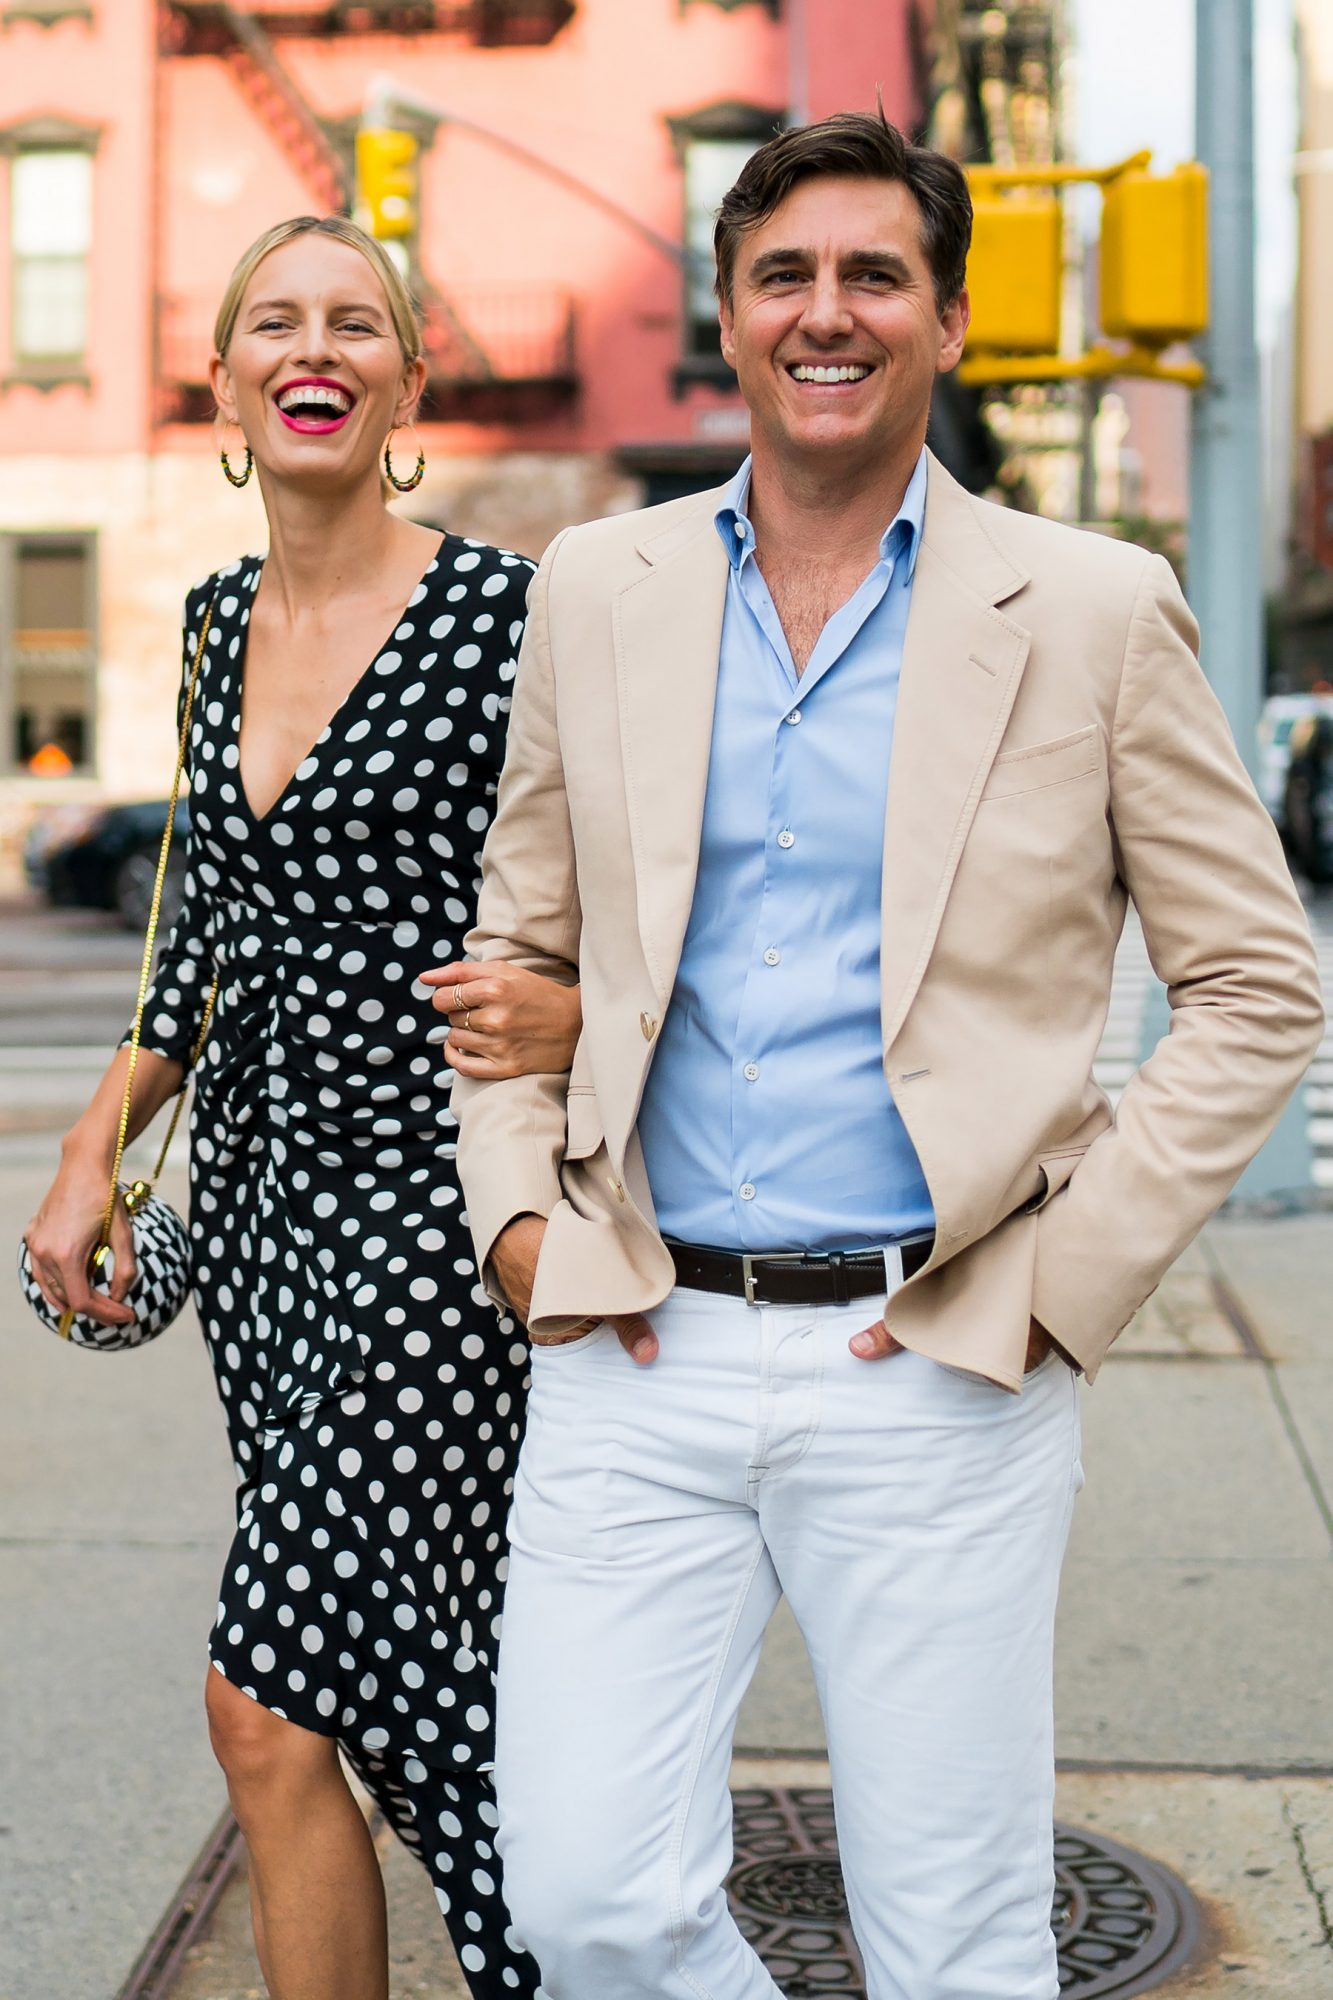 EXCLUSIVE: Karolina Kurkova And Archie Drury Out For A Stroll In New York City